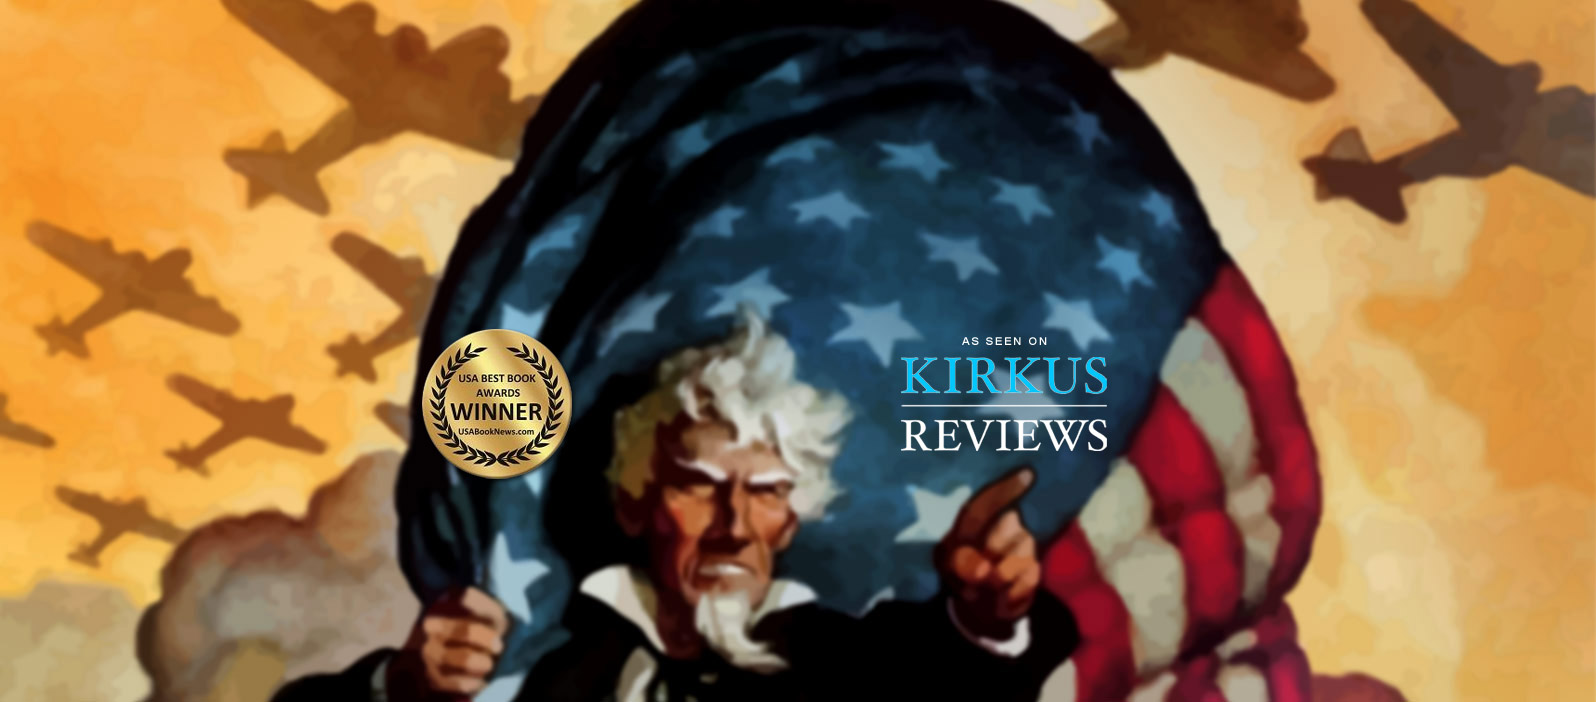 lrg-kirkusreviews-carousel